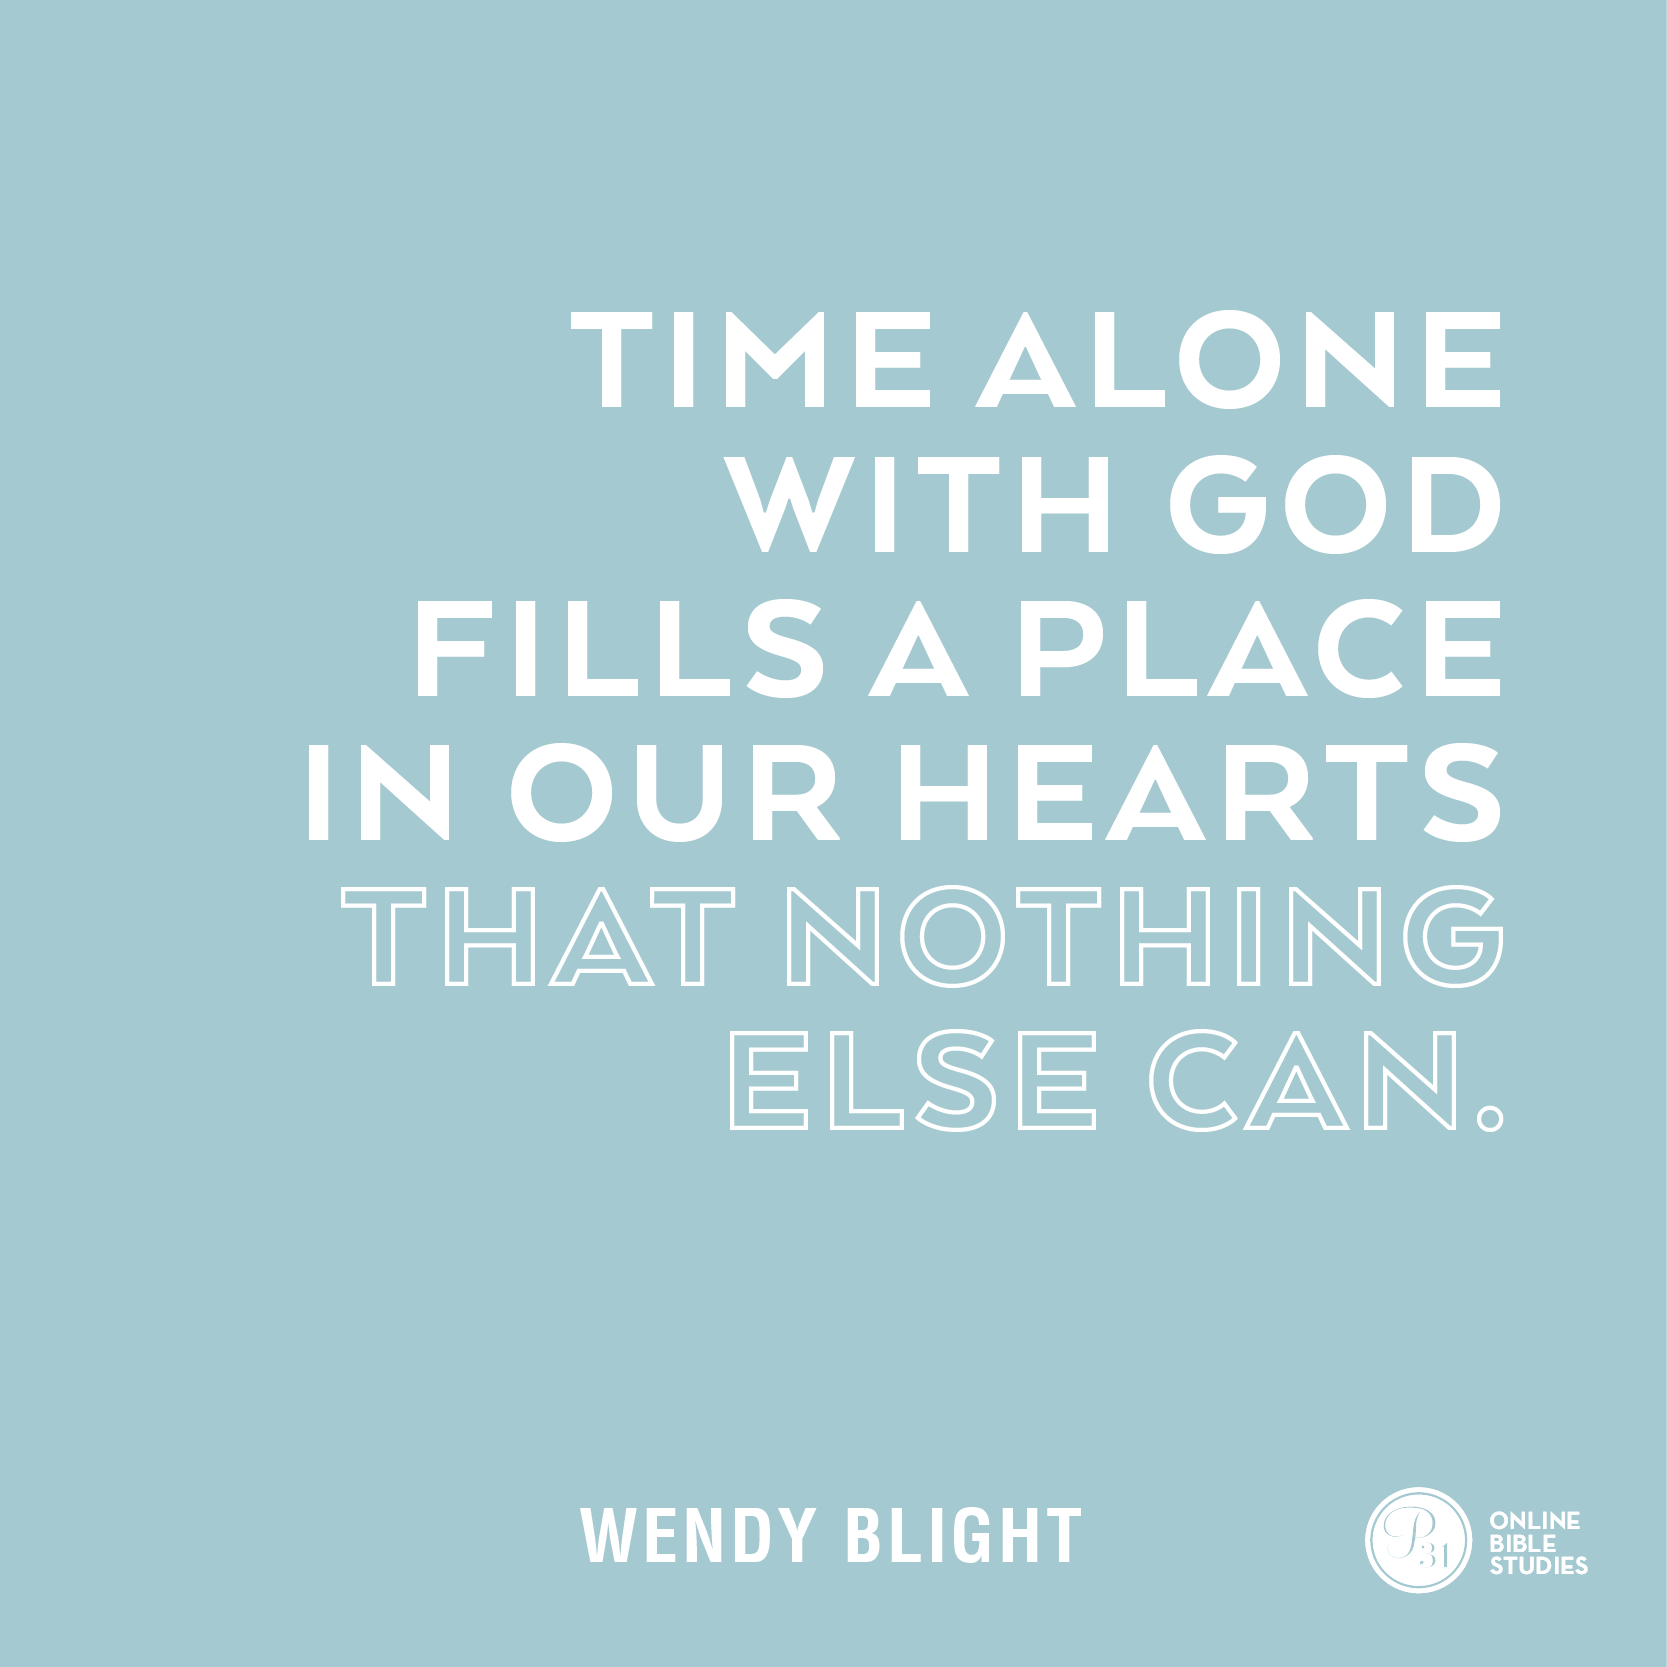 """""""Time alone with God fills a place in our hearts that nothing else can."""" - Wendy Blight  #HiddenJoyBook   Proverbs 31 Online Bible Studies Week 5 #P31OBS"""